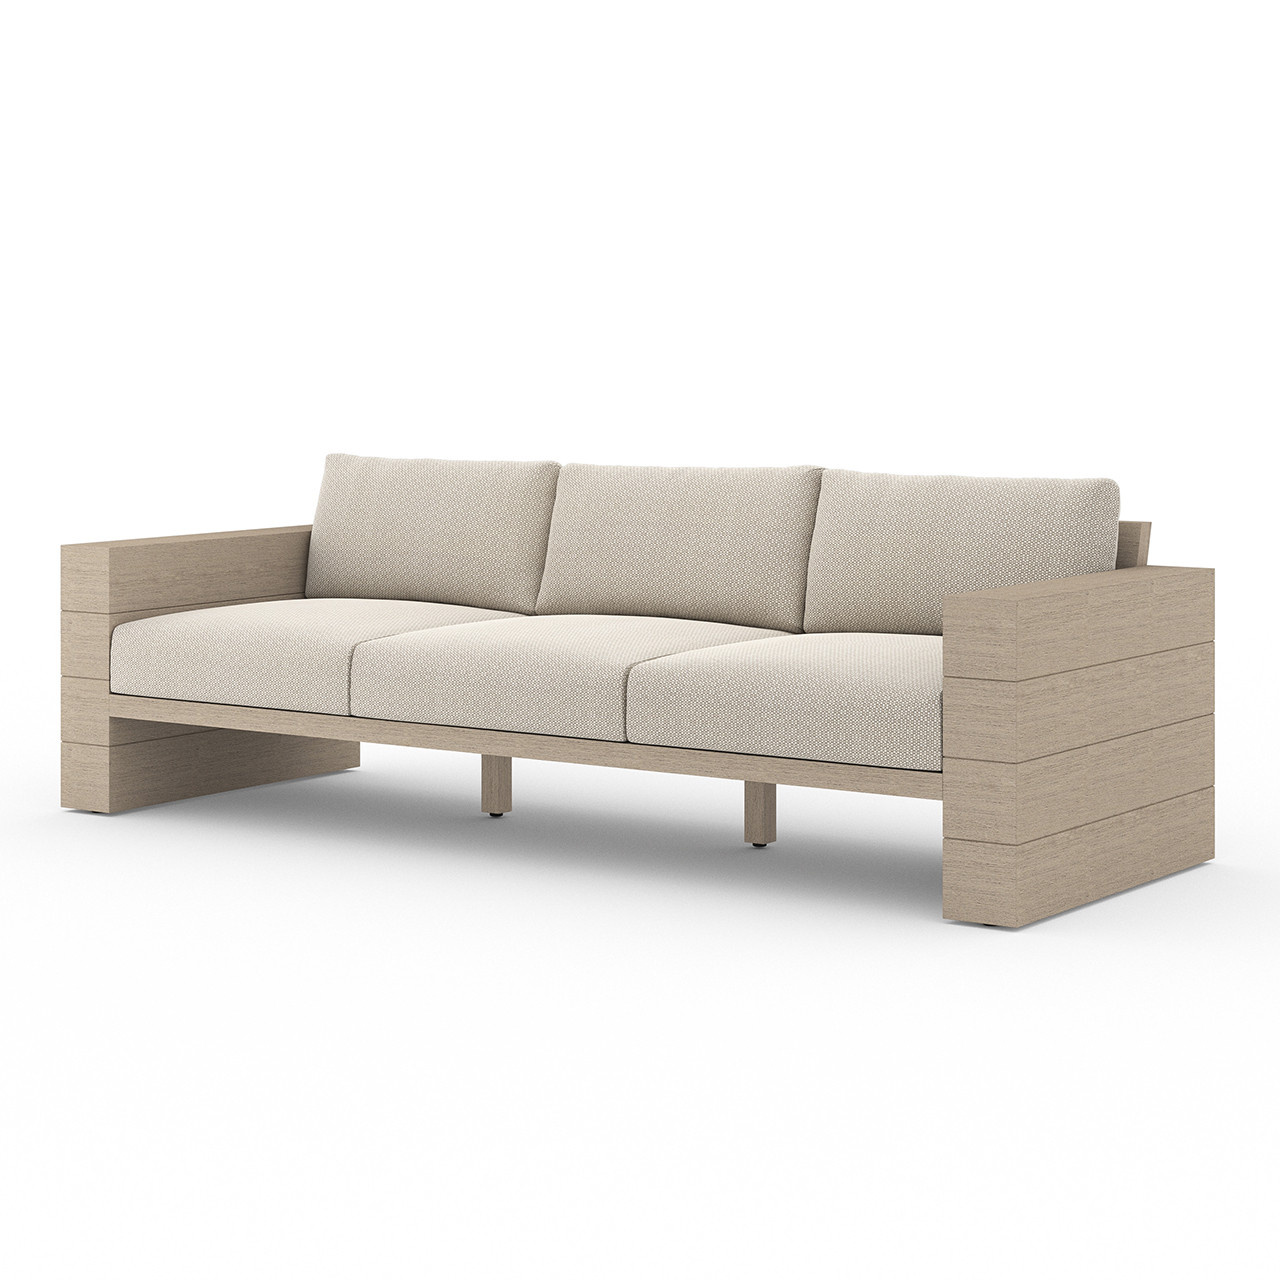 Royce Teak Outdoor Sofa - Washed Brown